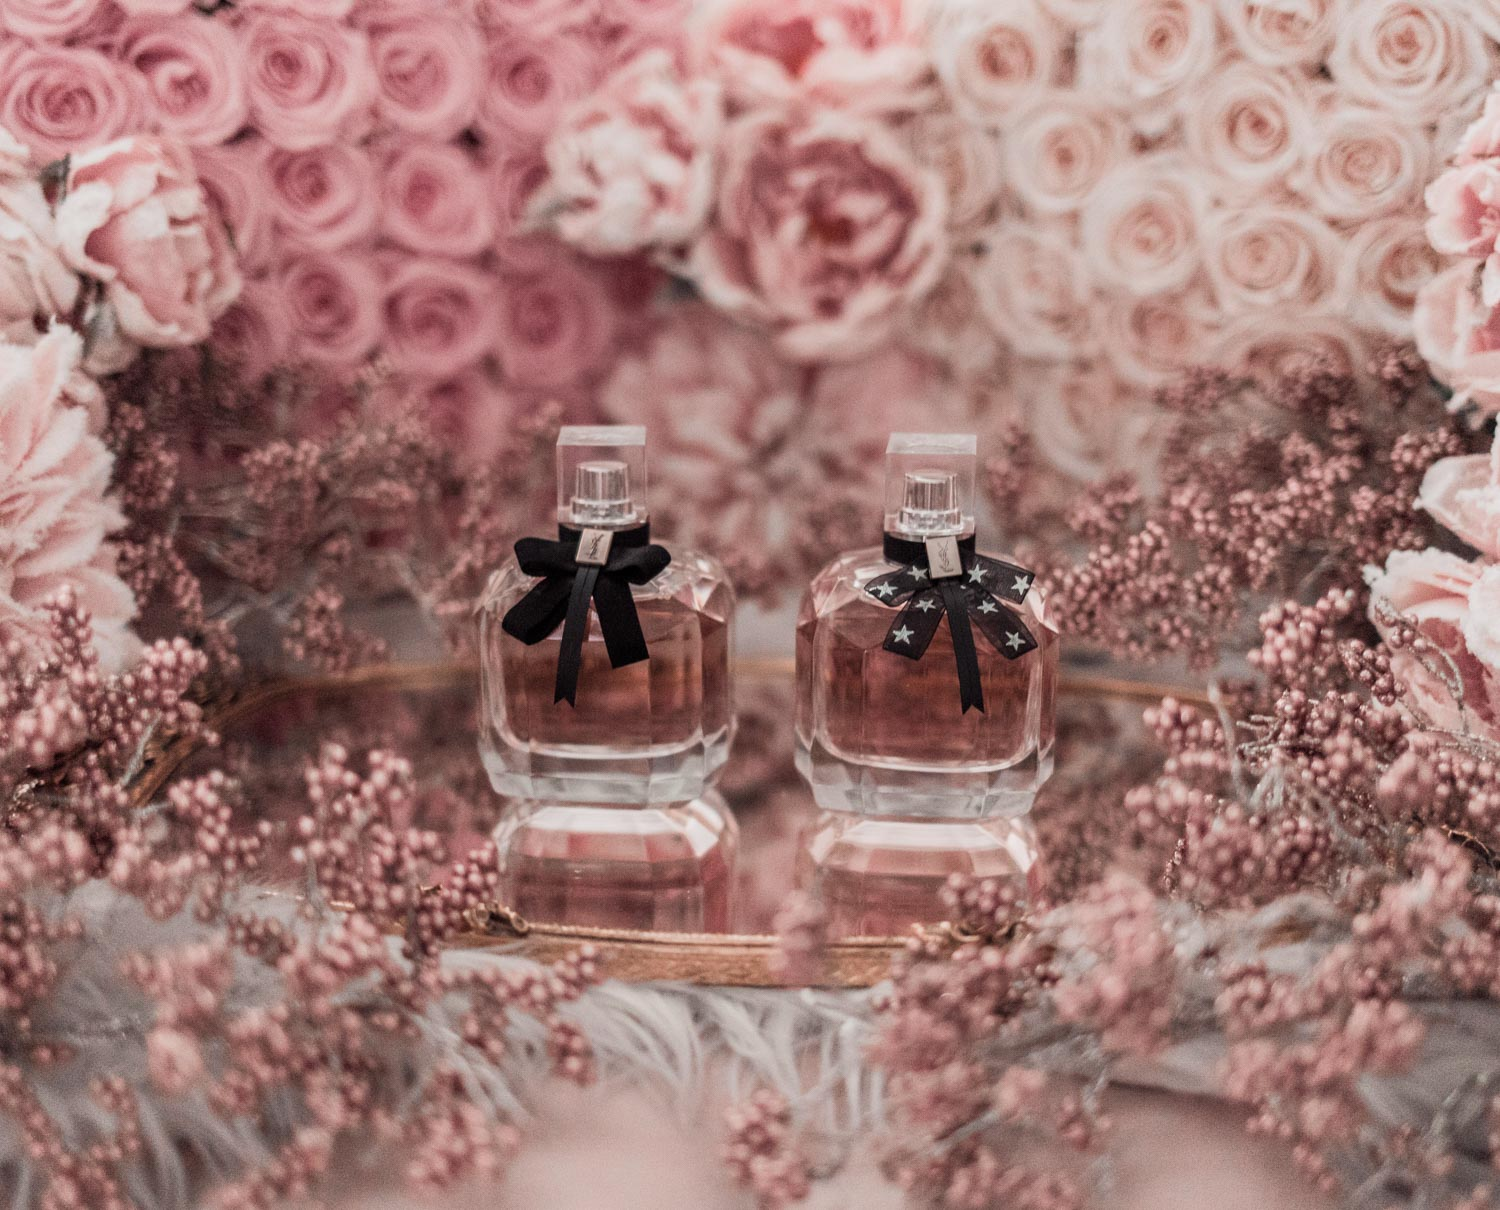 Feminine fashion blogger Elizabeth Hugen of Lizzie in Lace shares the best feminine perfumes and her girly fragrance collection including YSL Mon Paris